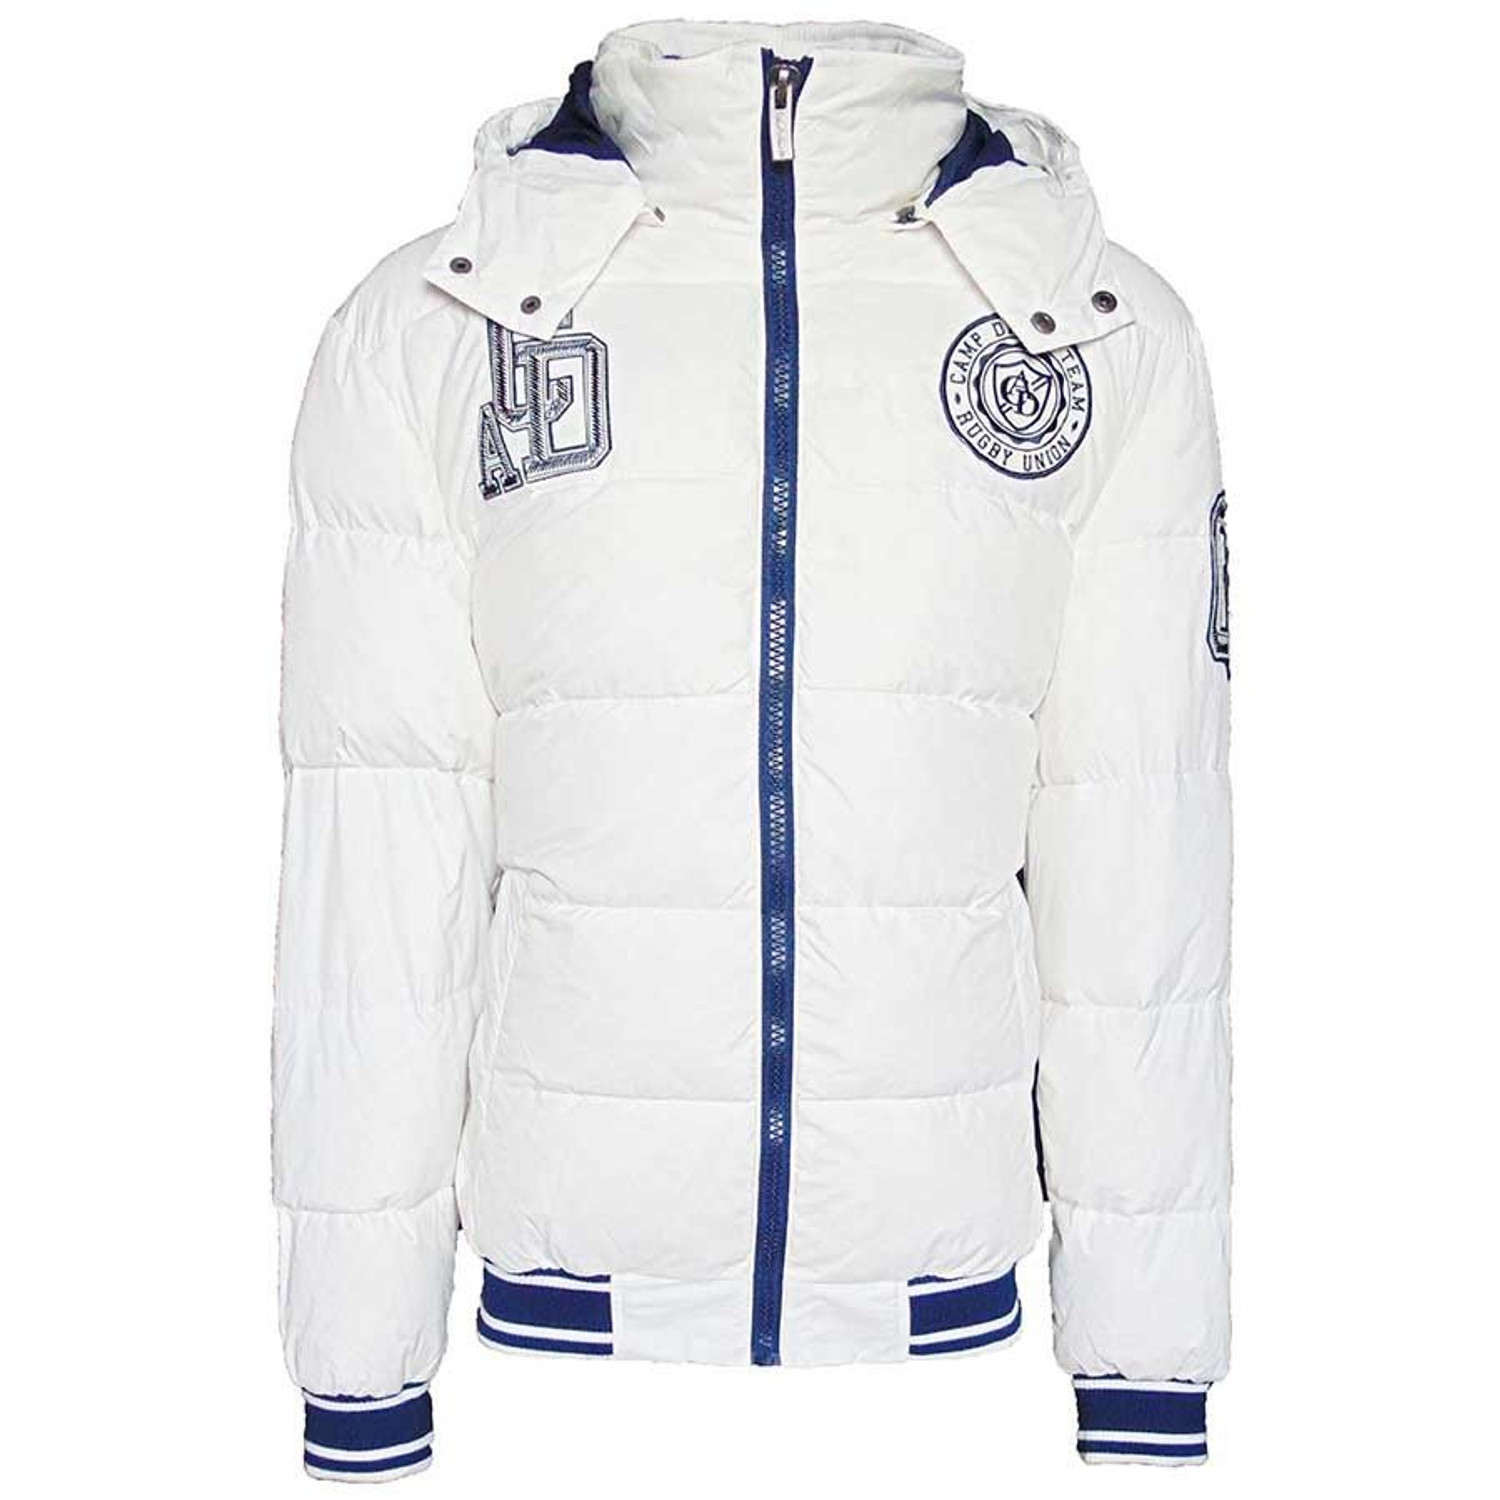 Repliken Angebot Online-Verkauf Camp David World Class Rugby III Herren Winterjacke Daunenjacke